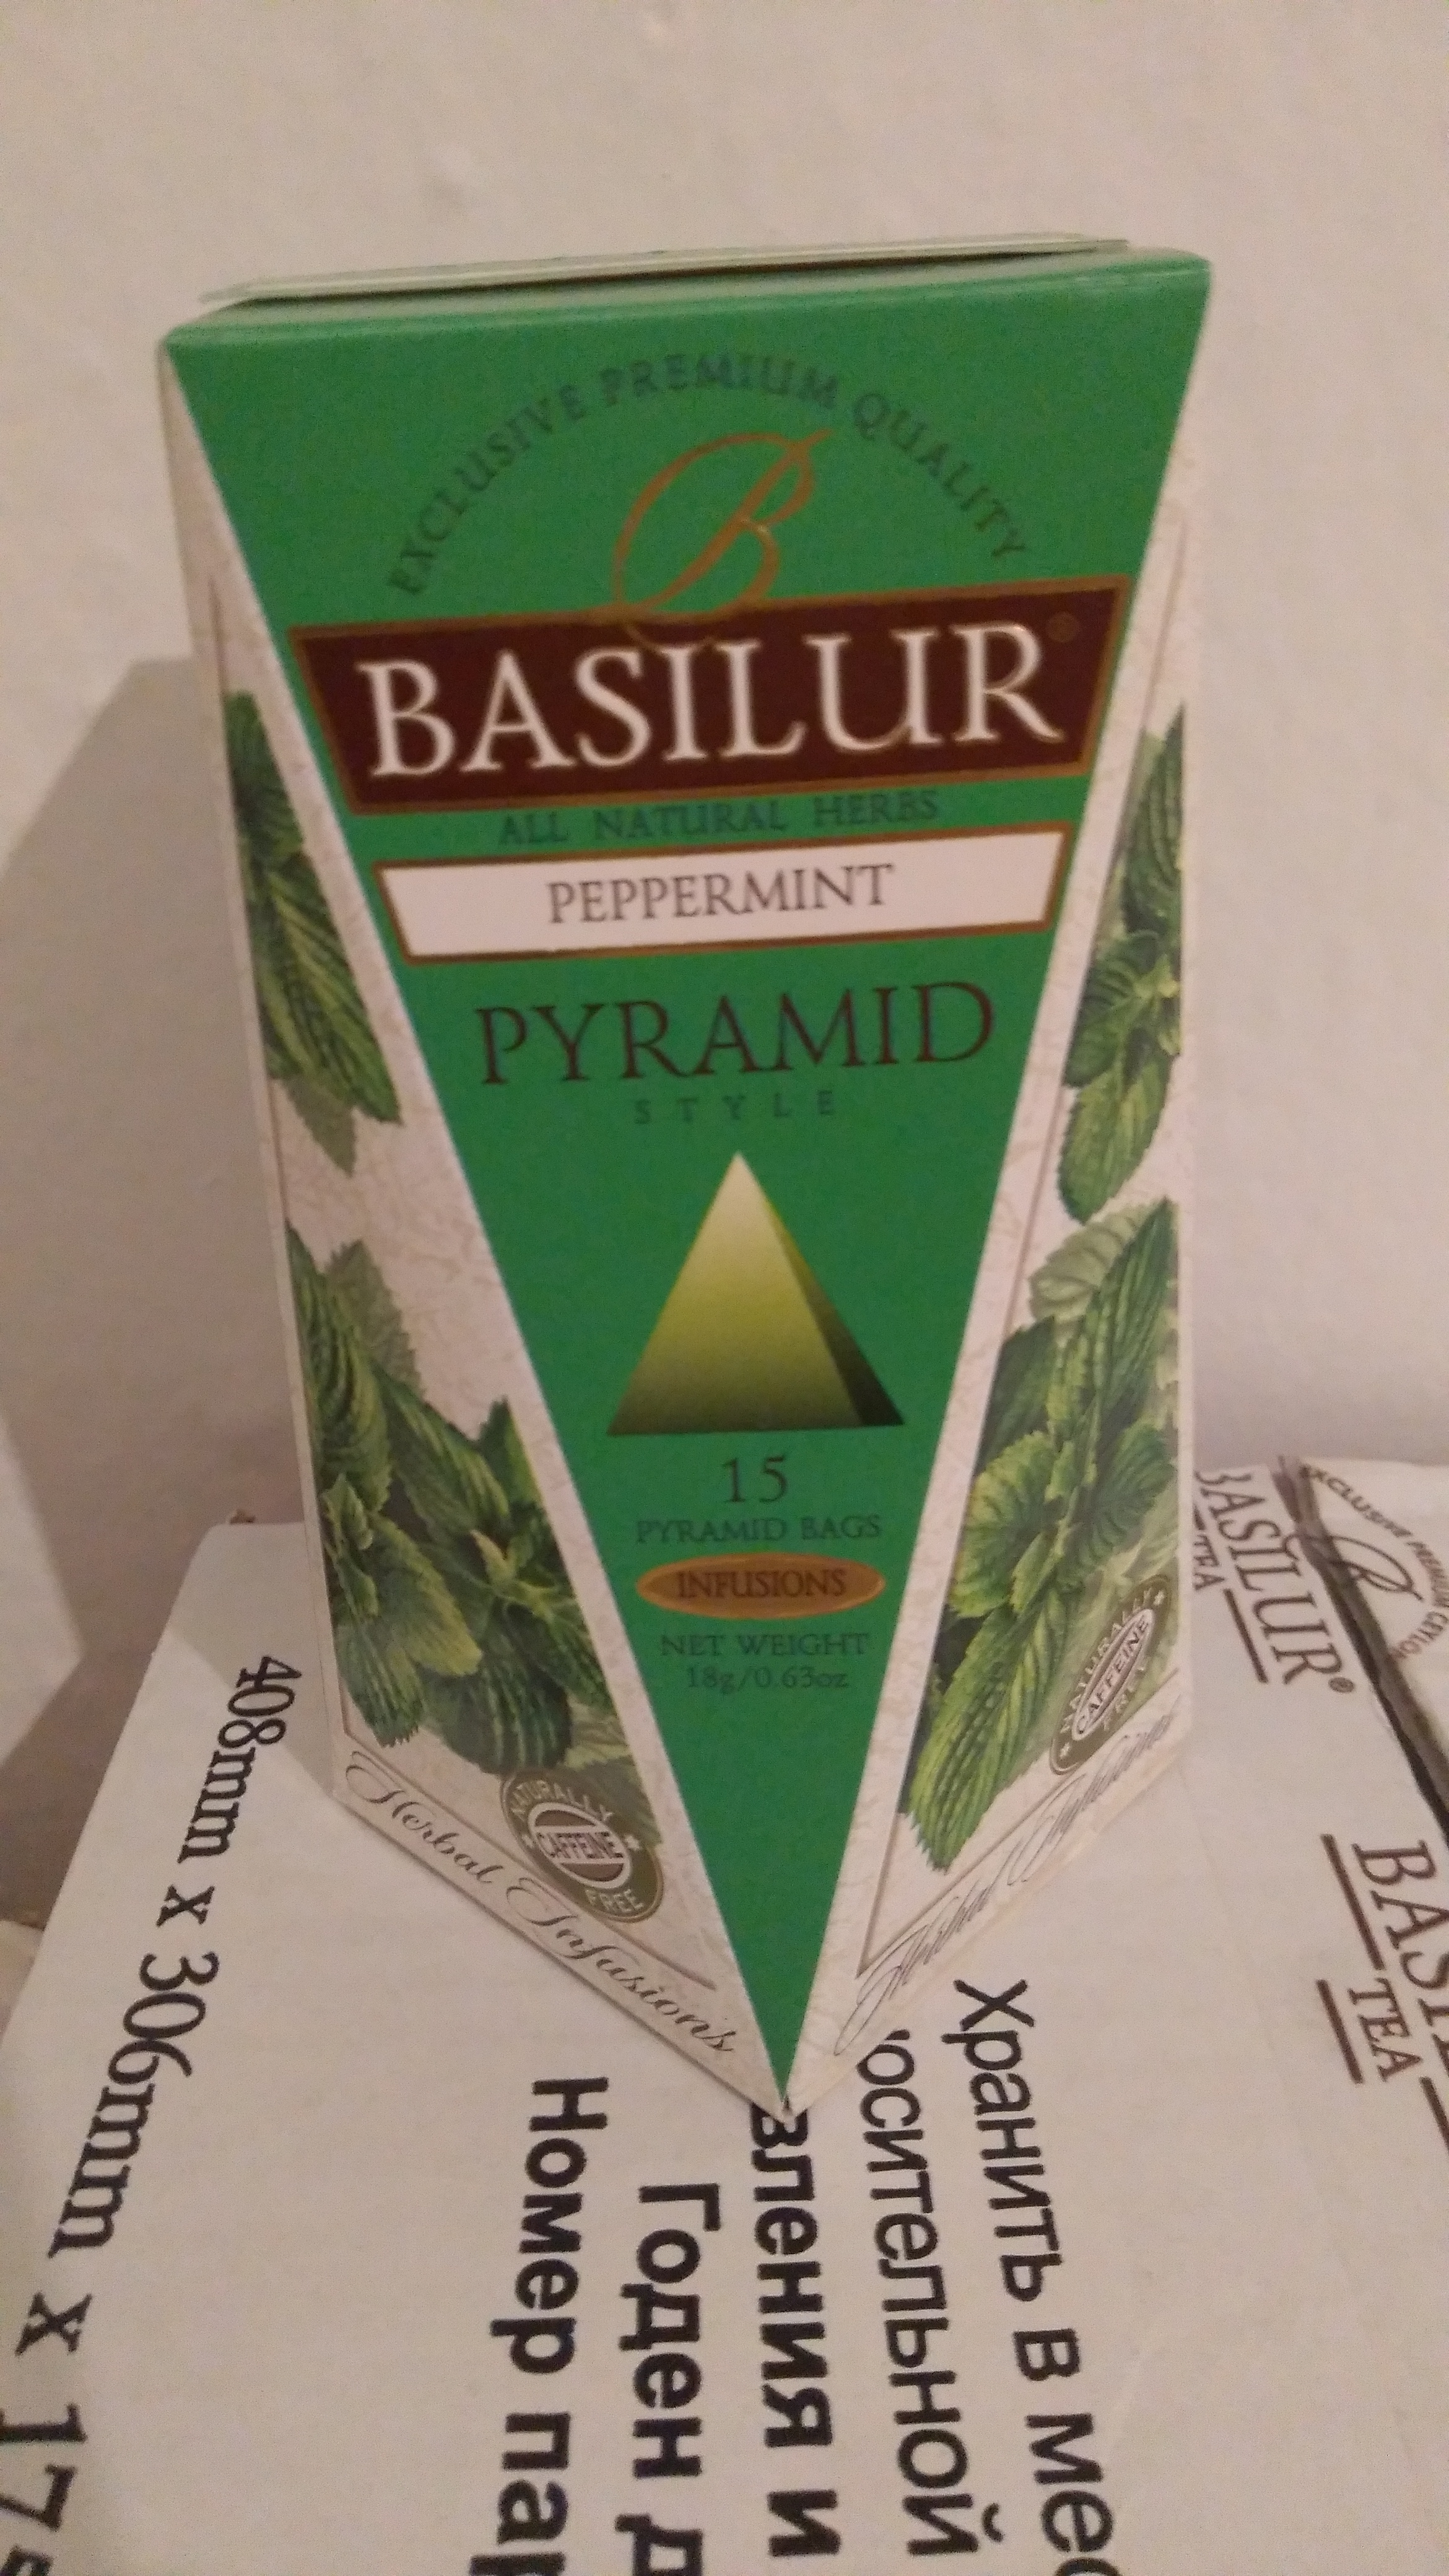 BASILUR Herbal Peppermint Pyramid 15x1,2g